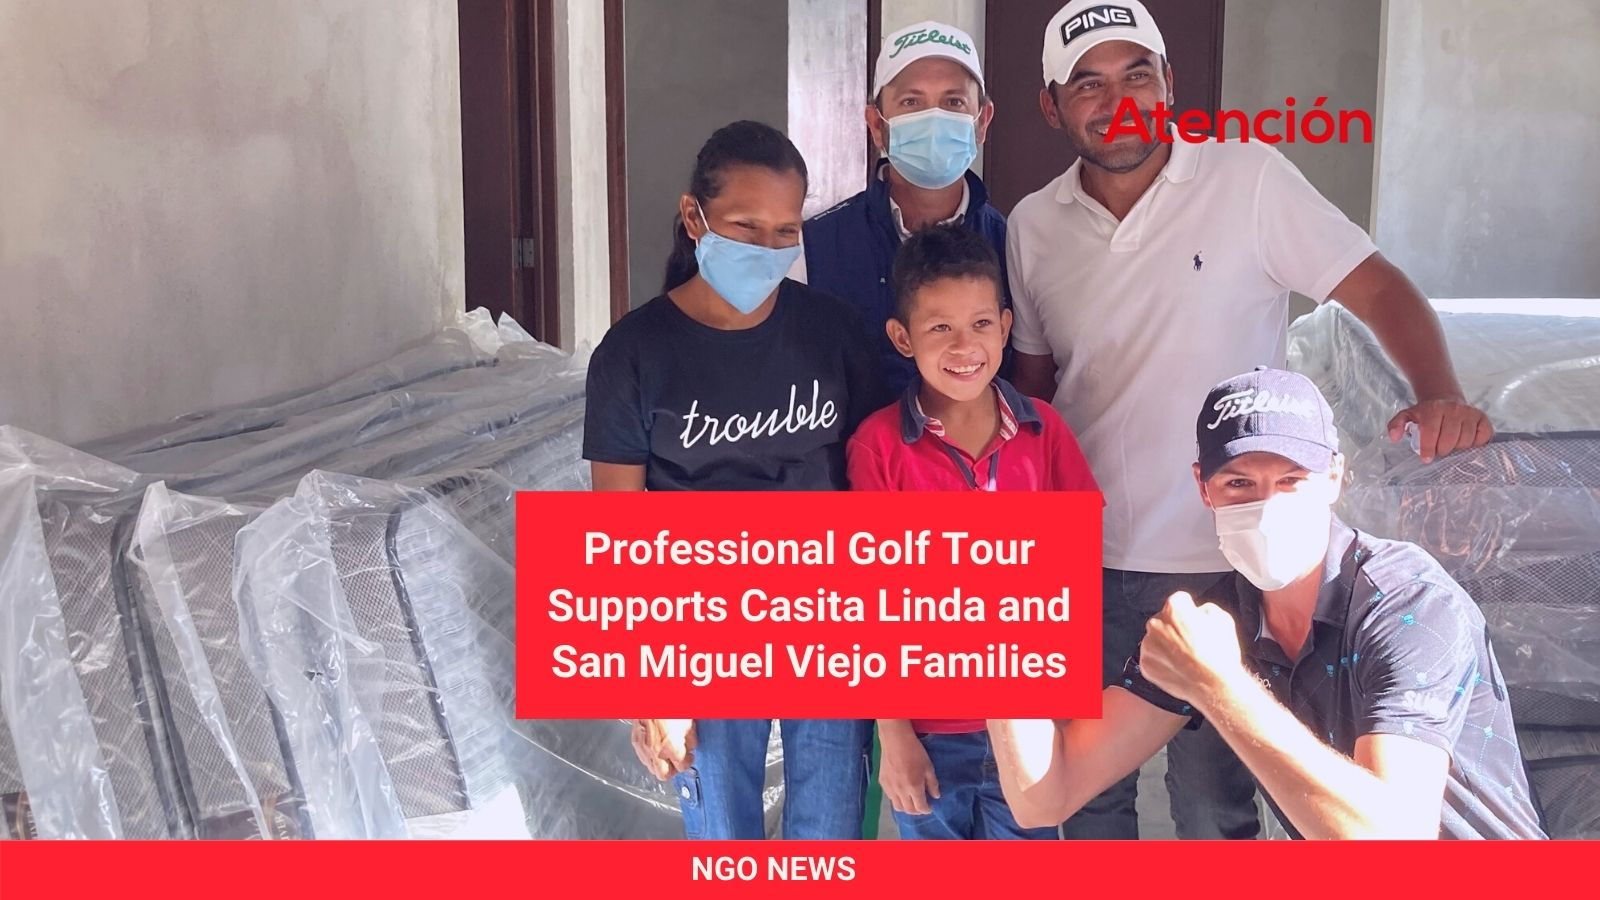 Professional-Golf-Tour-Supports-Casita-Linda-and-San-Miguel-Viejo-Families.jpg